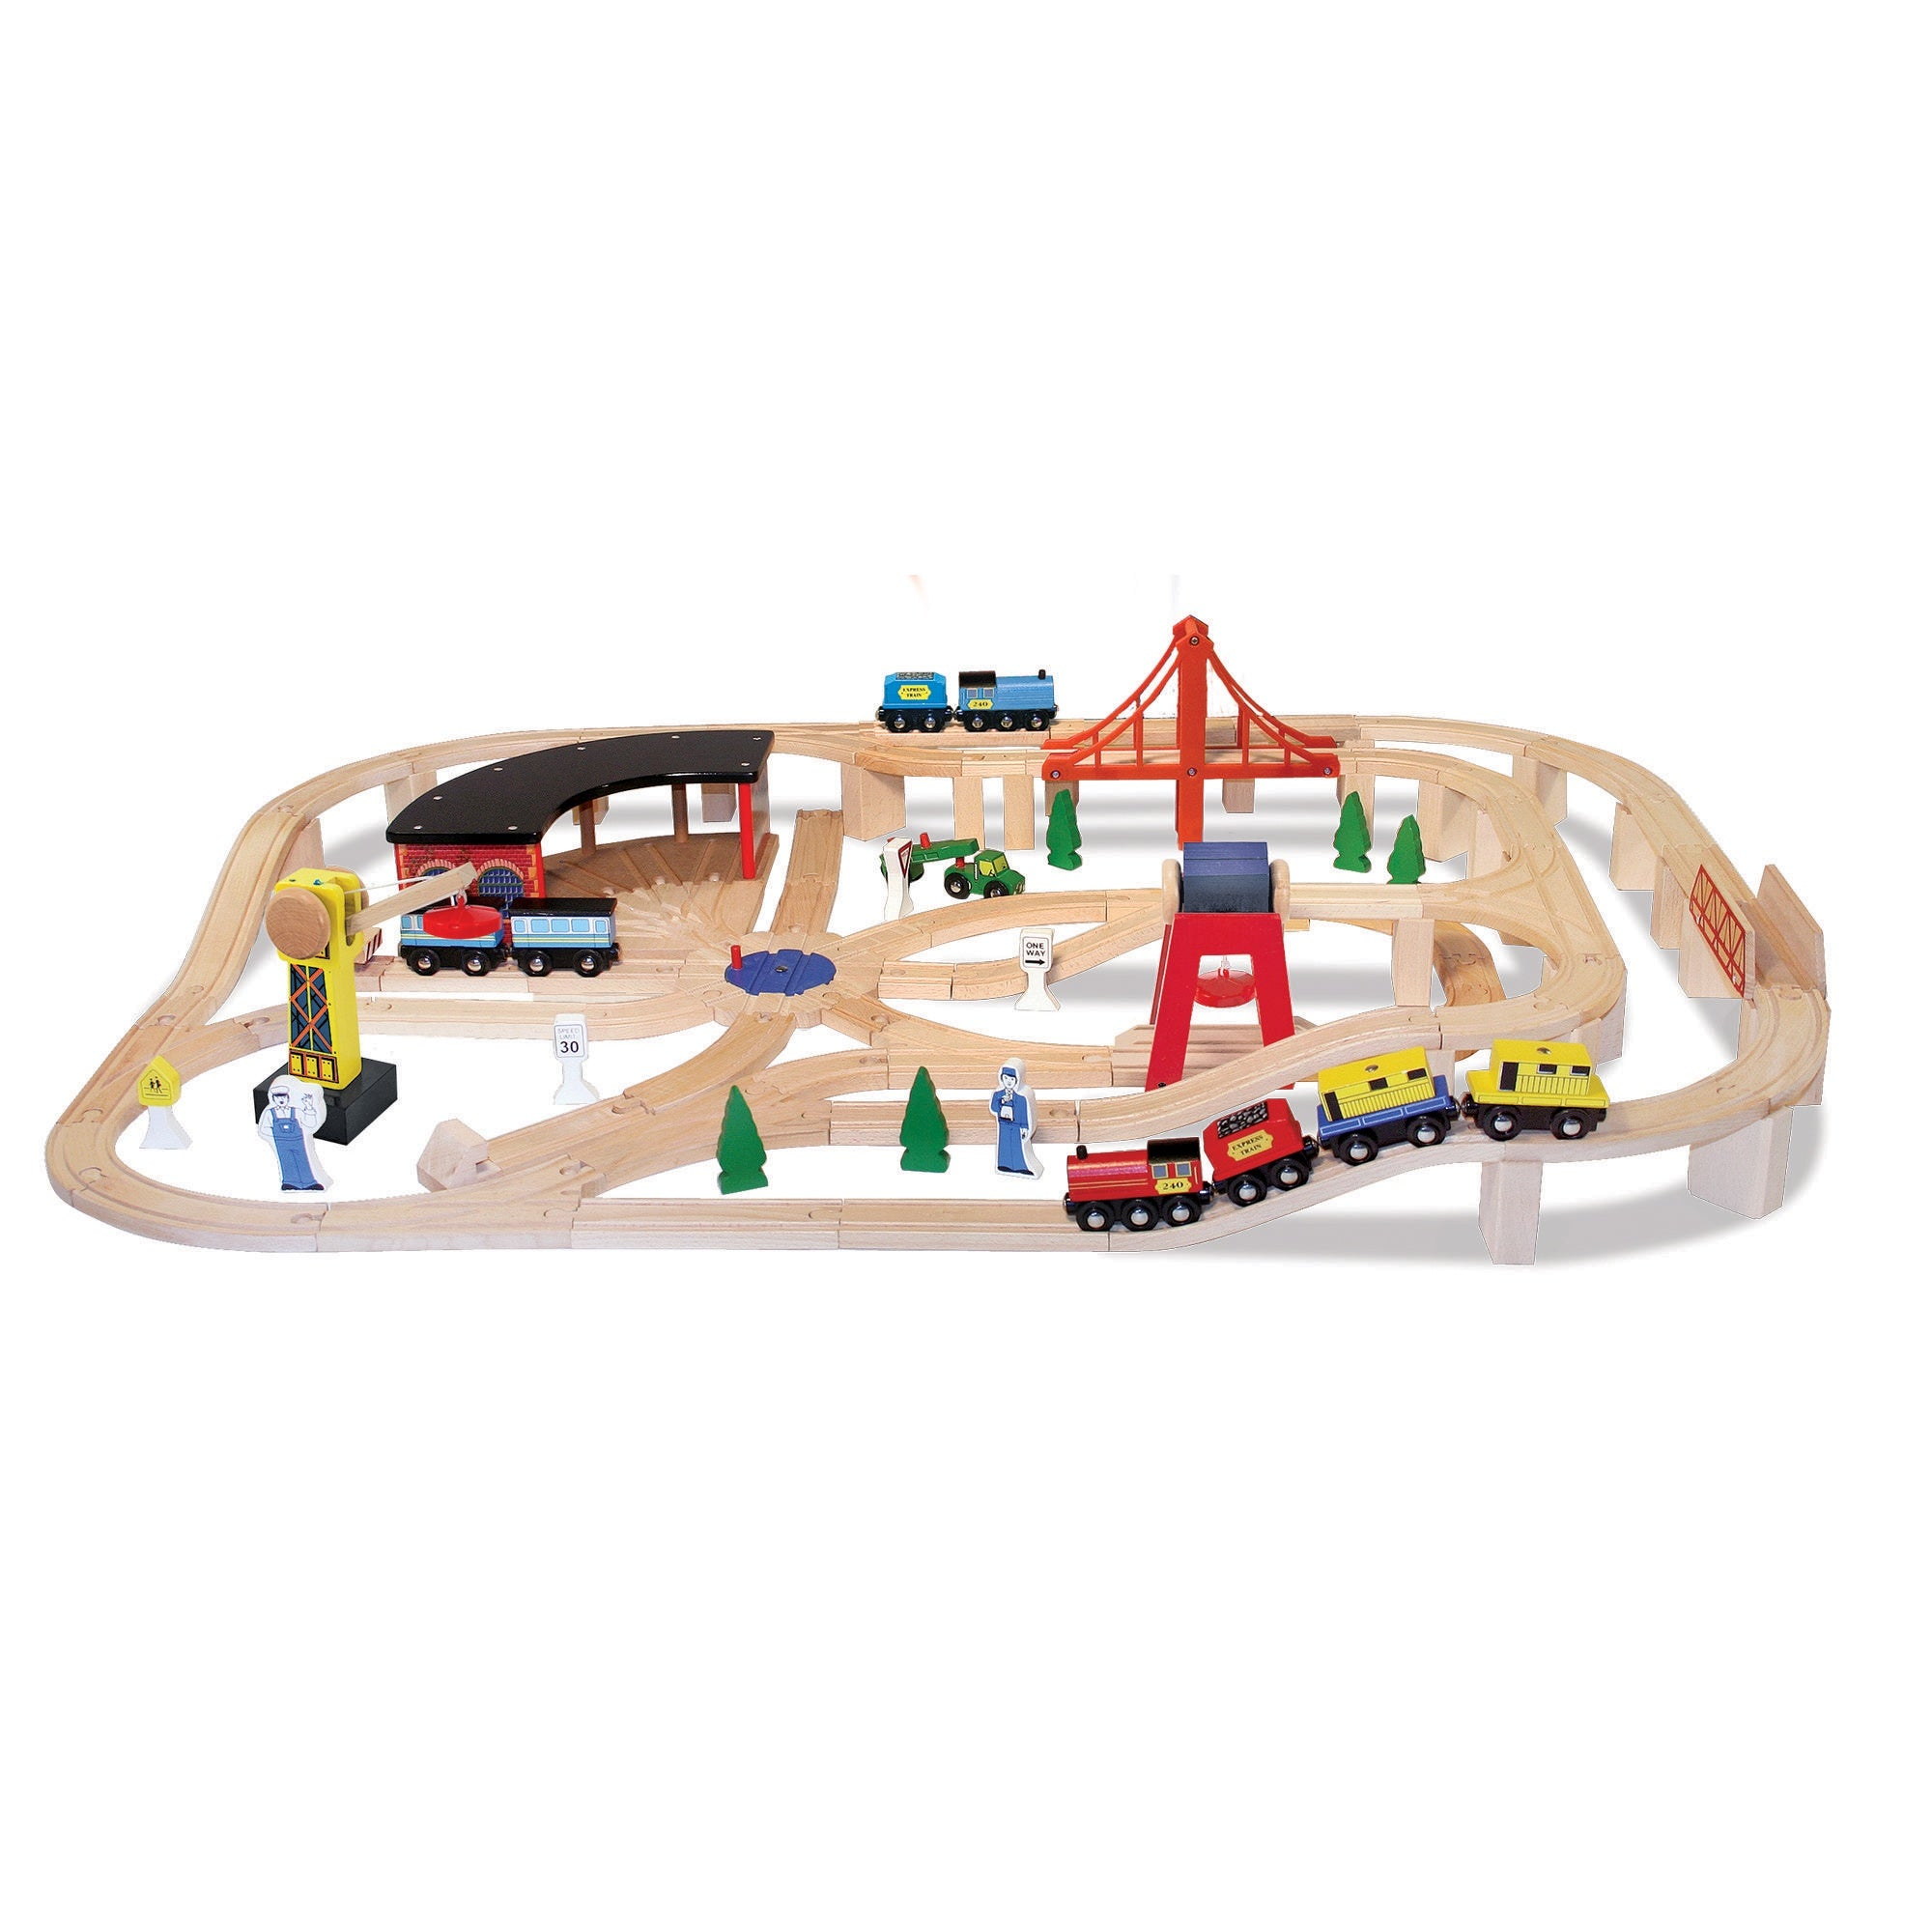 Melissa & Doug 132pc Wooden Railway Set